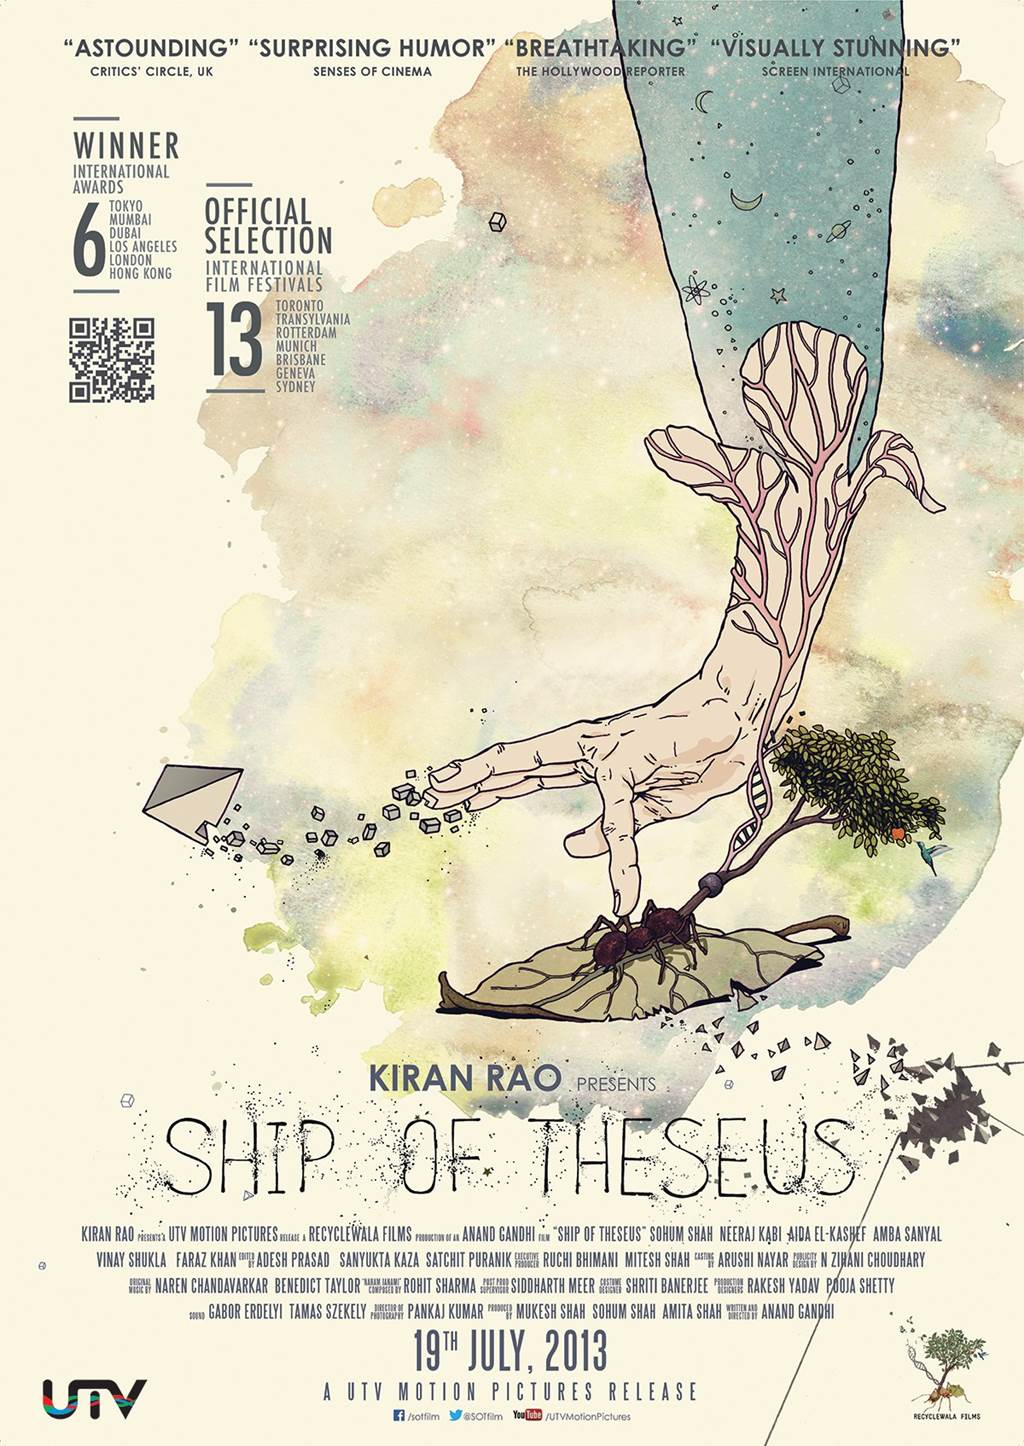 The Ship of Theseus and the Question of Identity